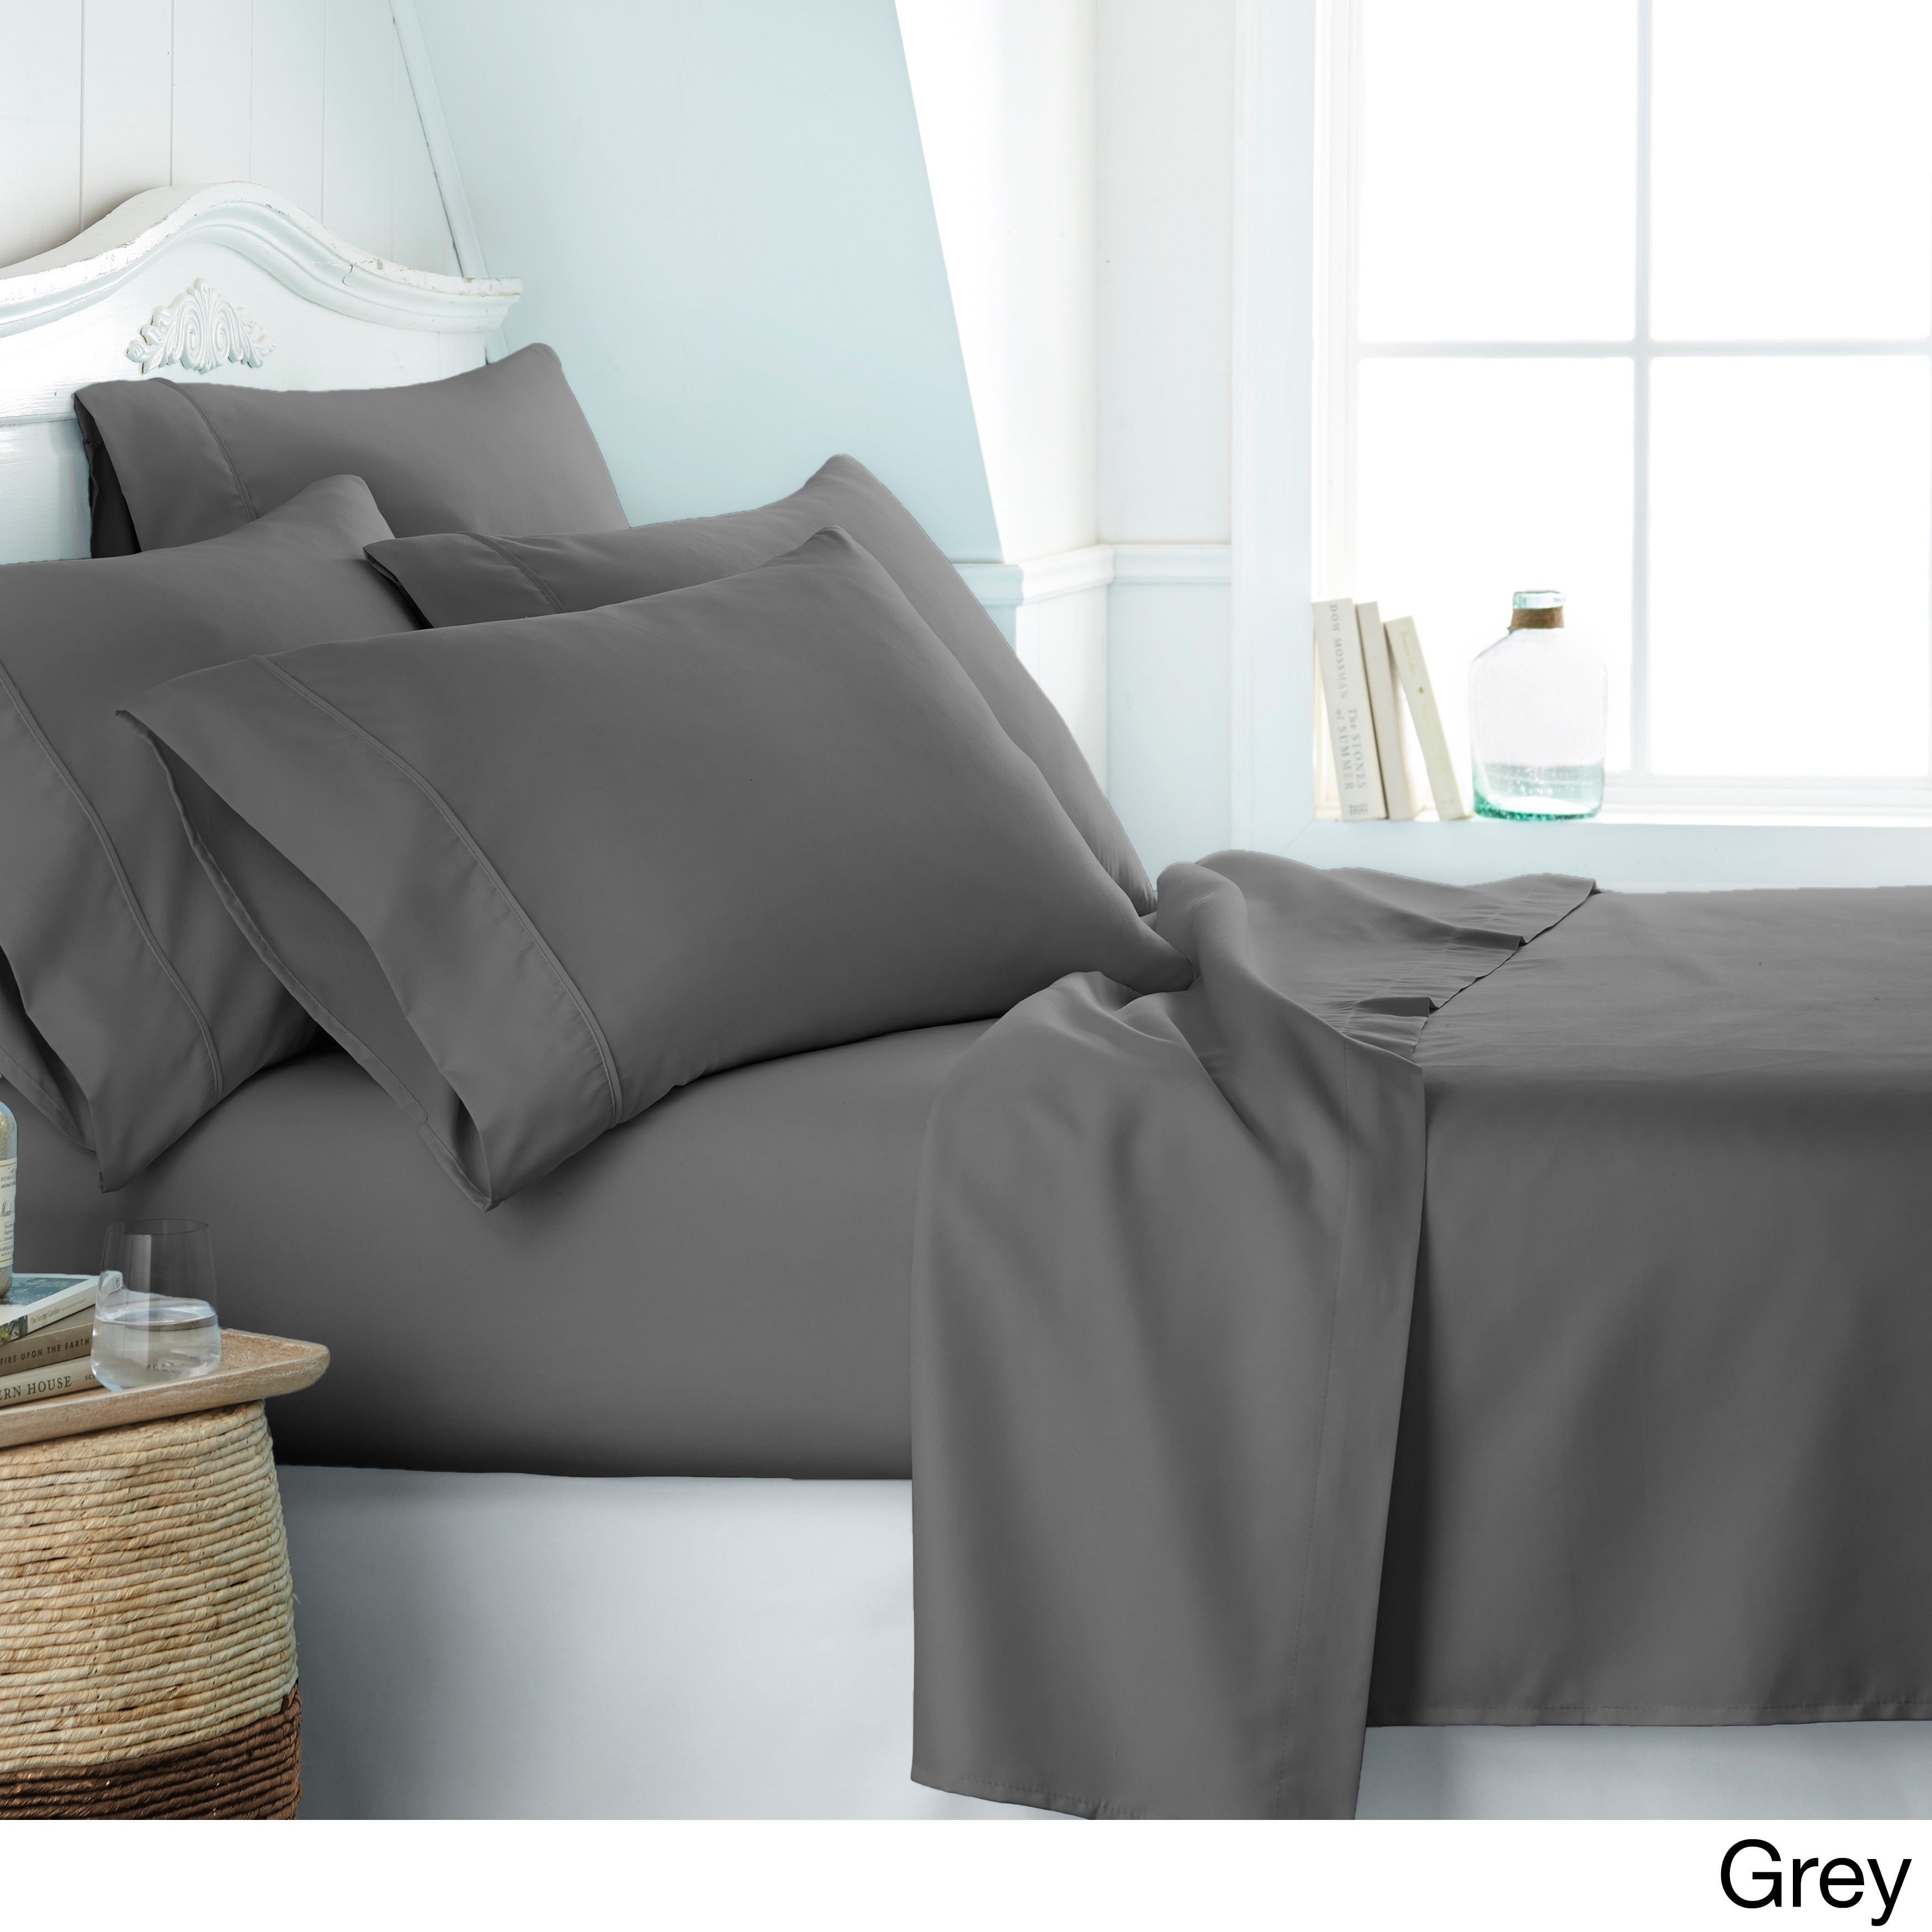 Soft Essentials Ultra Soft 6 Piece Deep Pocket Bed Sheet Set (More Options